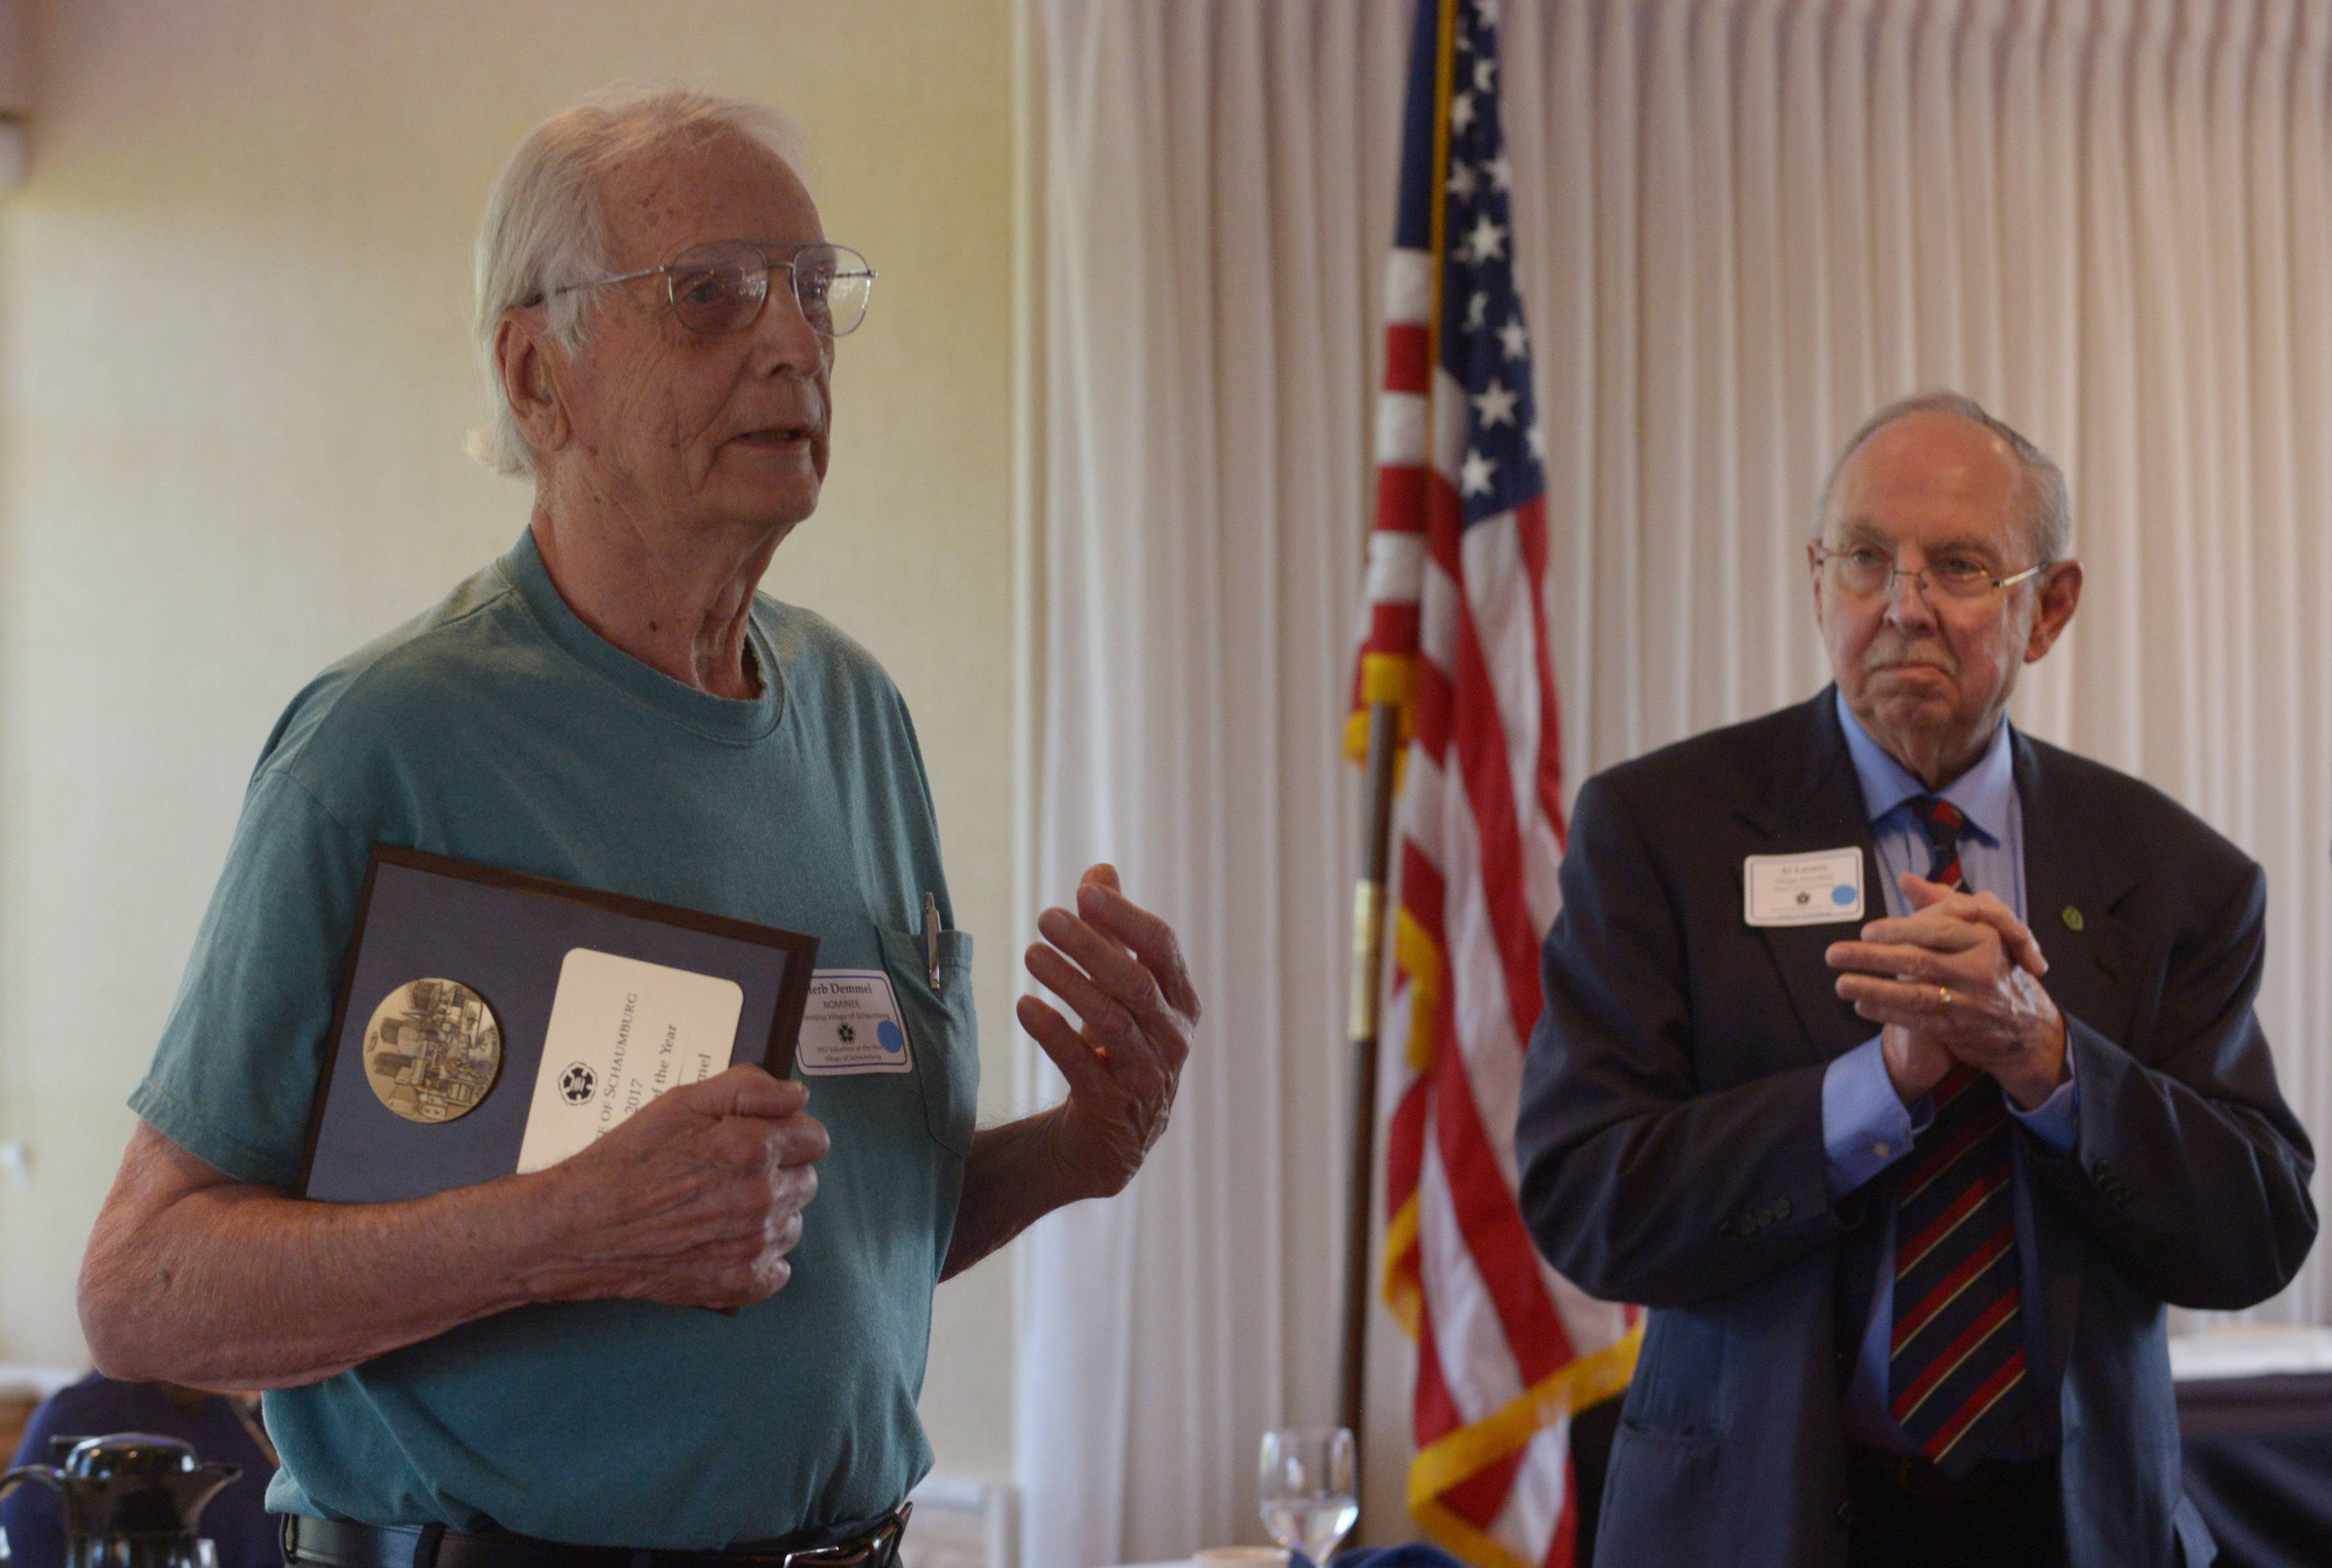 Adult Individual Award recipient Herb Demmel speaks as Mayor Al Larson stands beside him during Schaumburg's annual Volunteer of the Year Luncheon Thursday at Chandler's in Schaumburg.